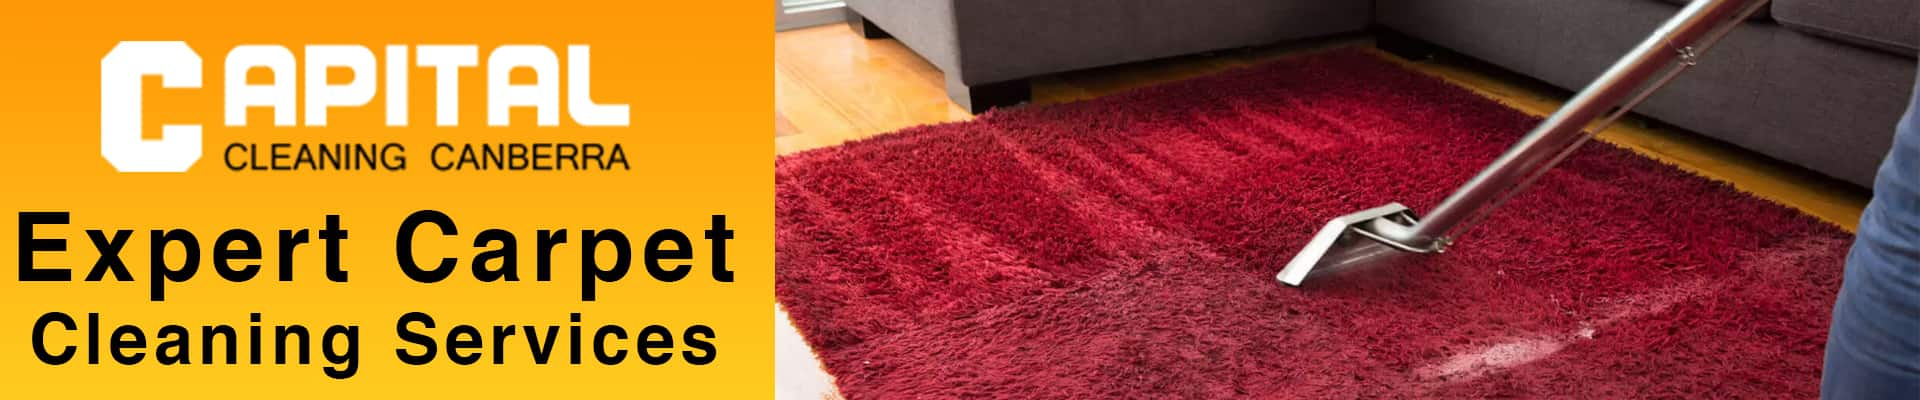 Expert Carpet Cleaning Services Lyneham